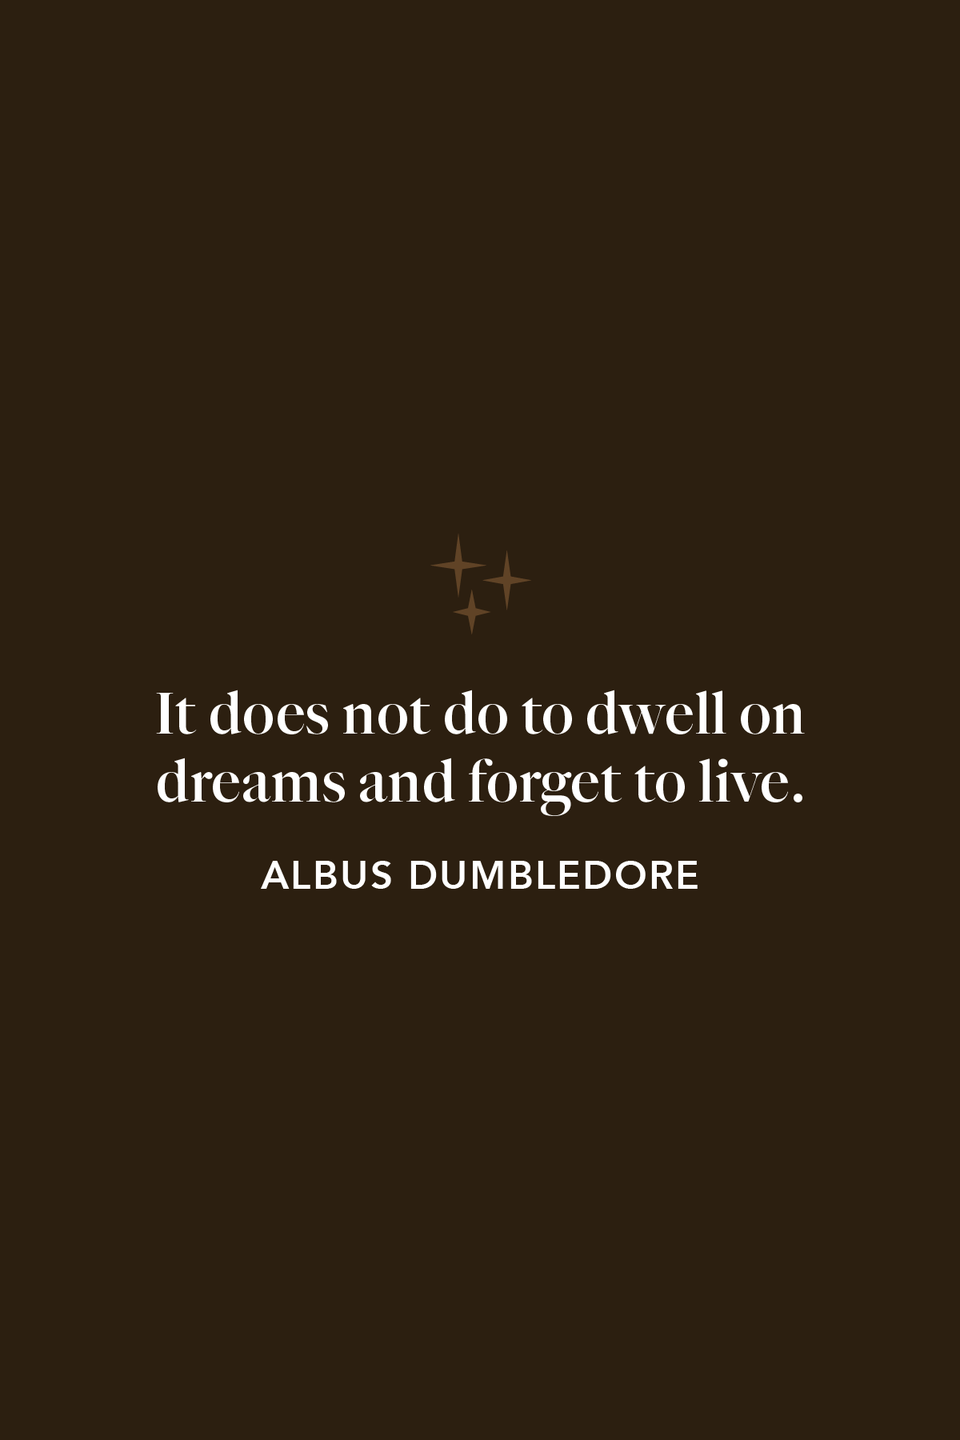 """<p>""""It does not do to dwell on dreams and forget to live,"""" Dumbledore tell Harry in chapter 12 of <em>The Sorcerer's Stone</em> after the young wizard sees his late parents in the Mirror of the Erised.</p>"""